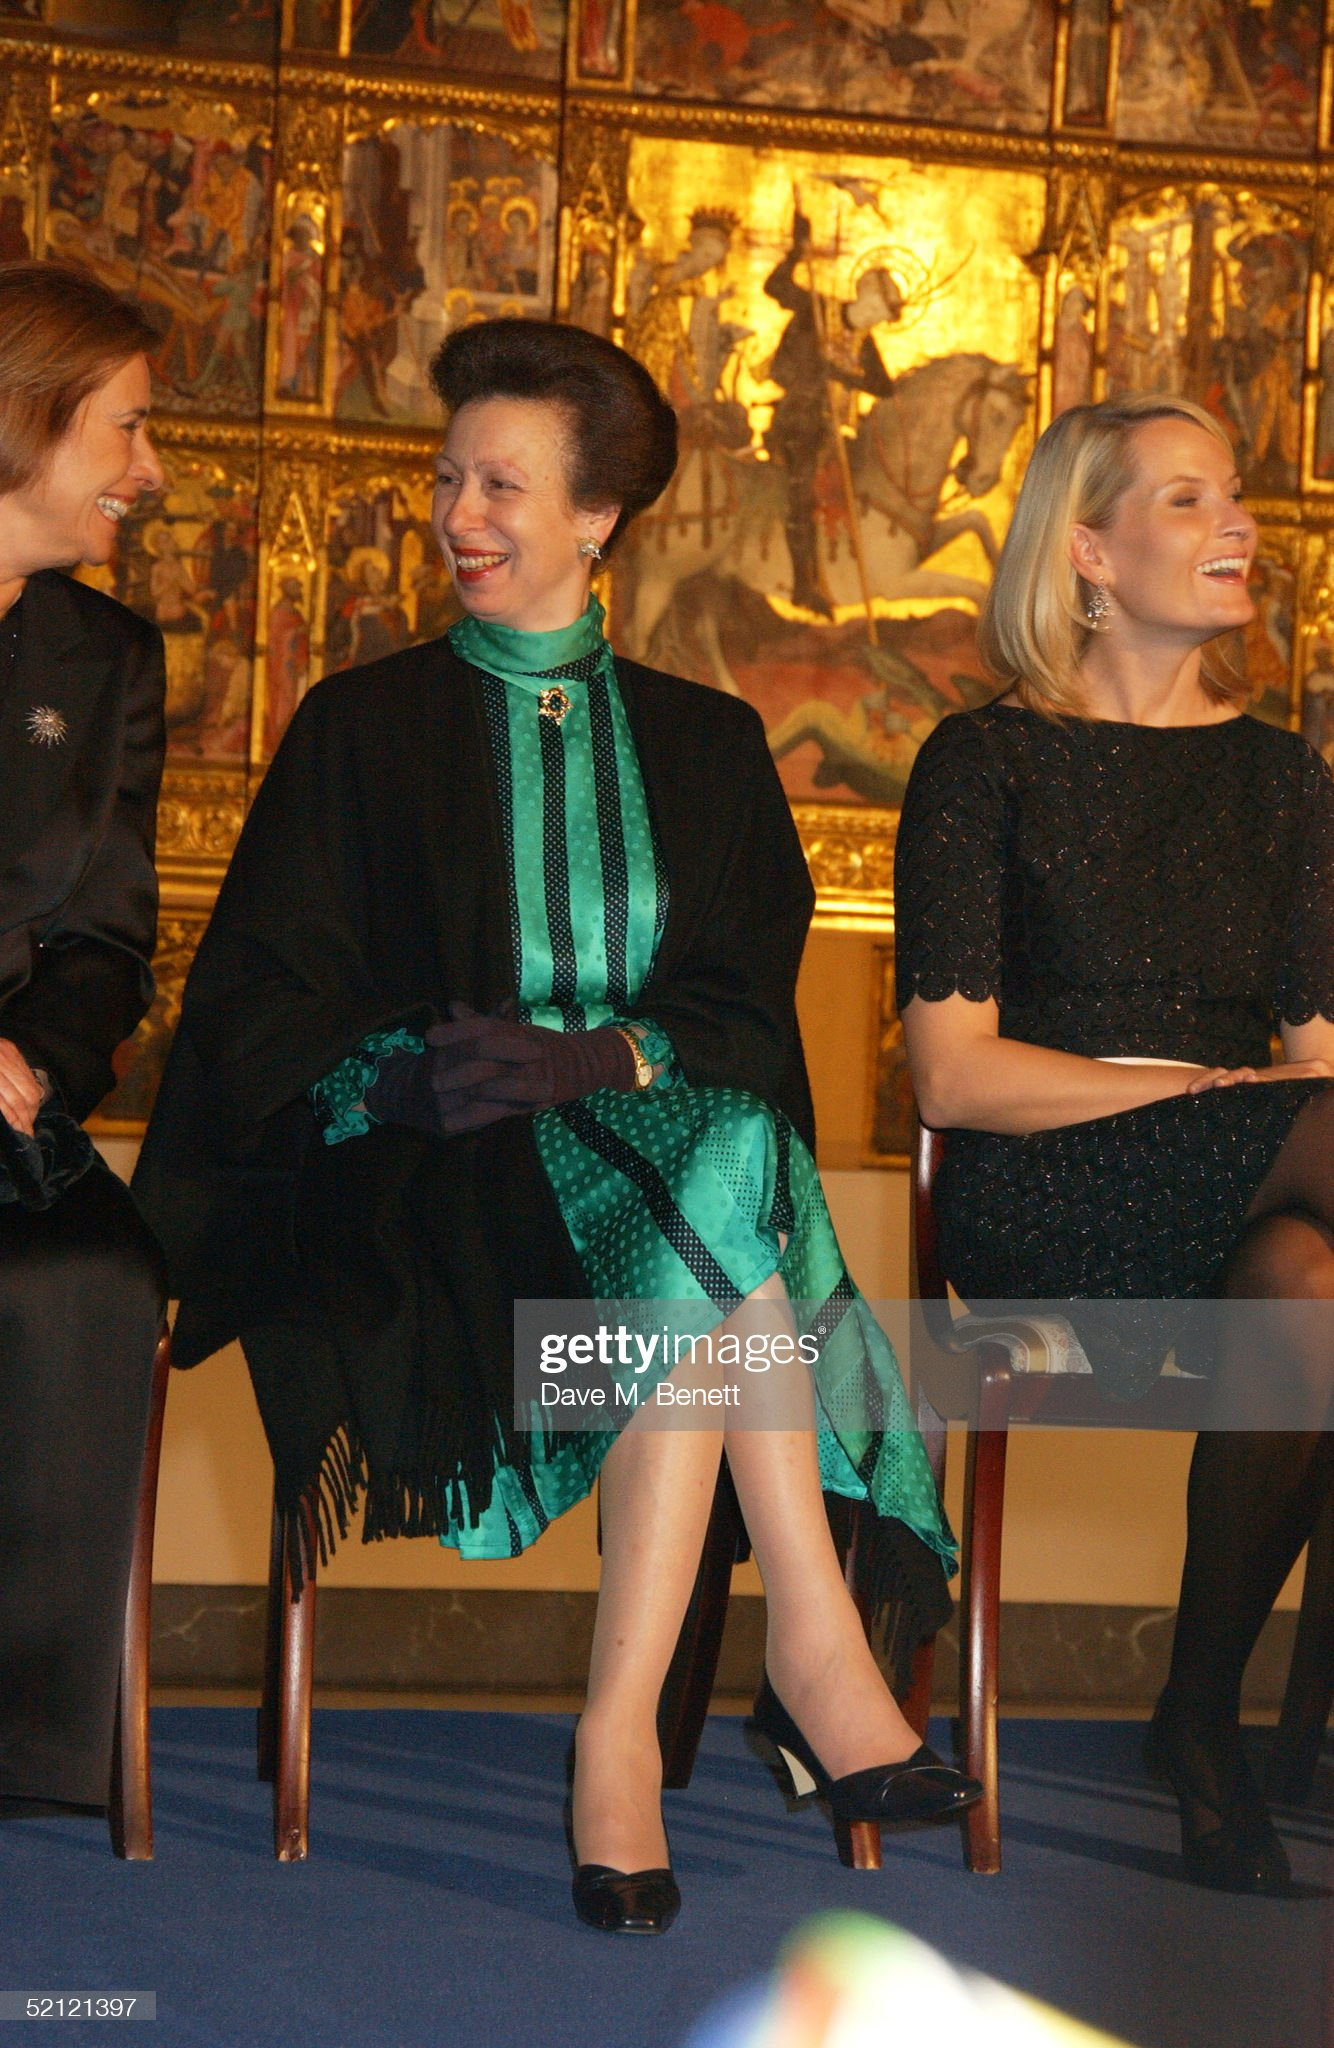 """Style and Splendour: Queen Maud of Norway's Wardrobe"" - Private View : News Photo"